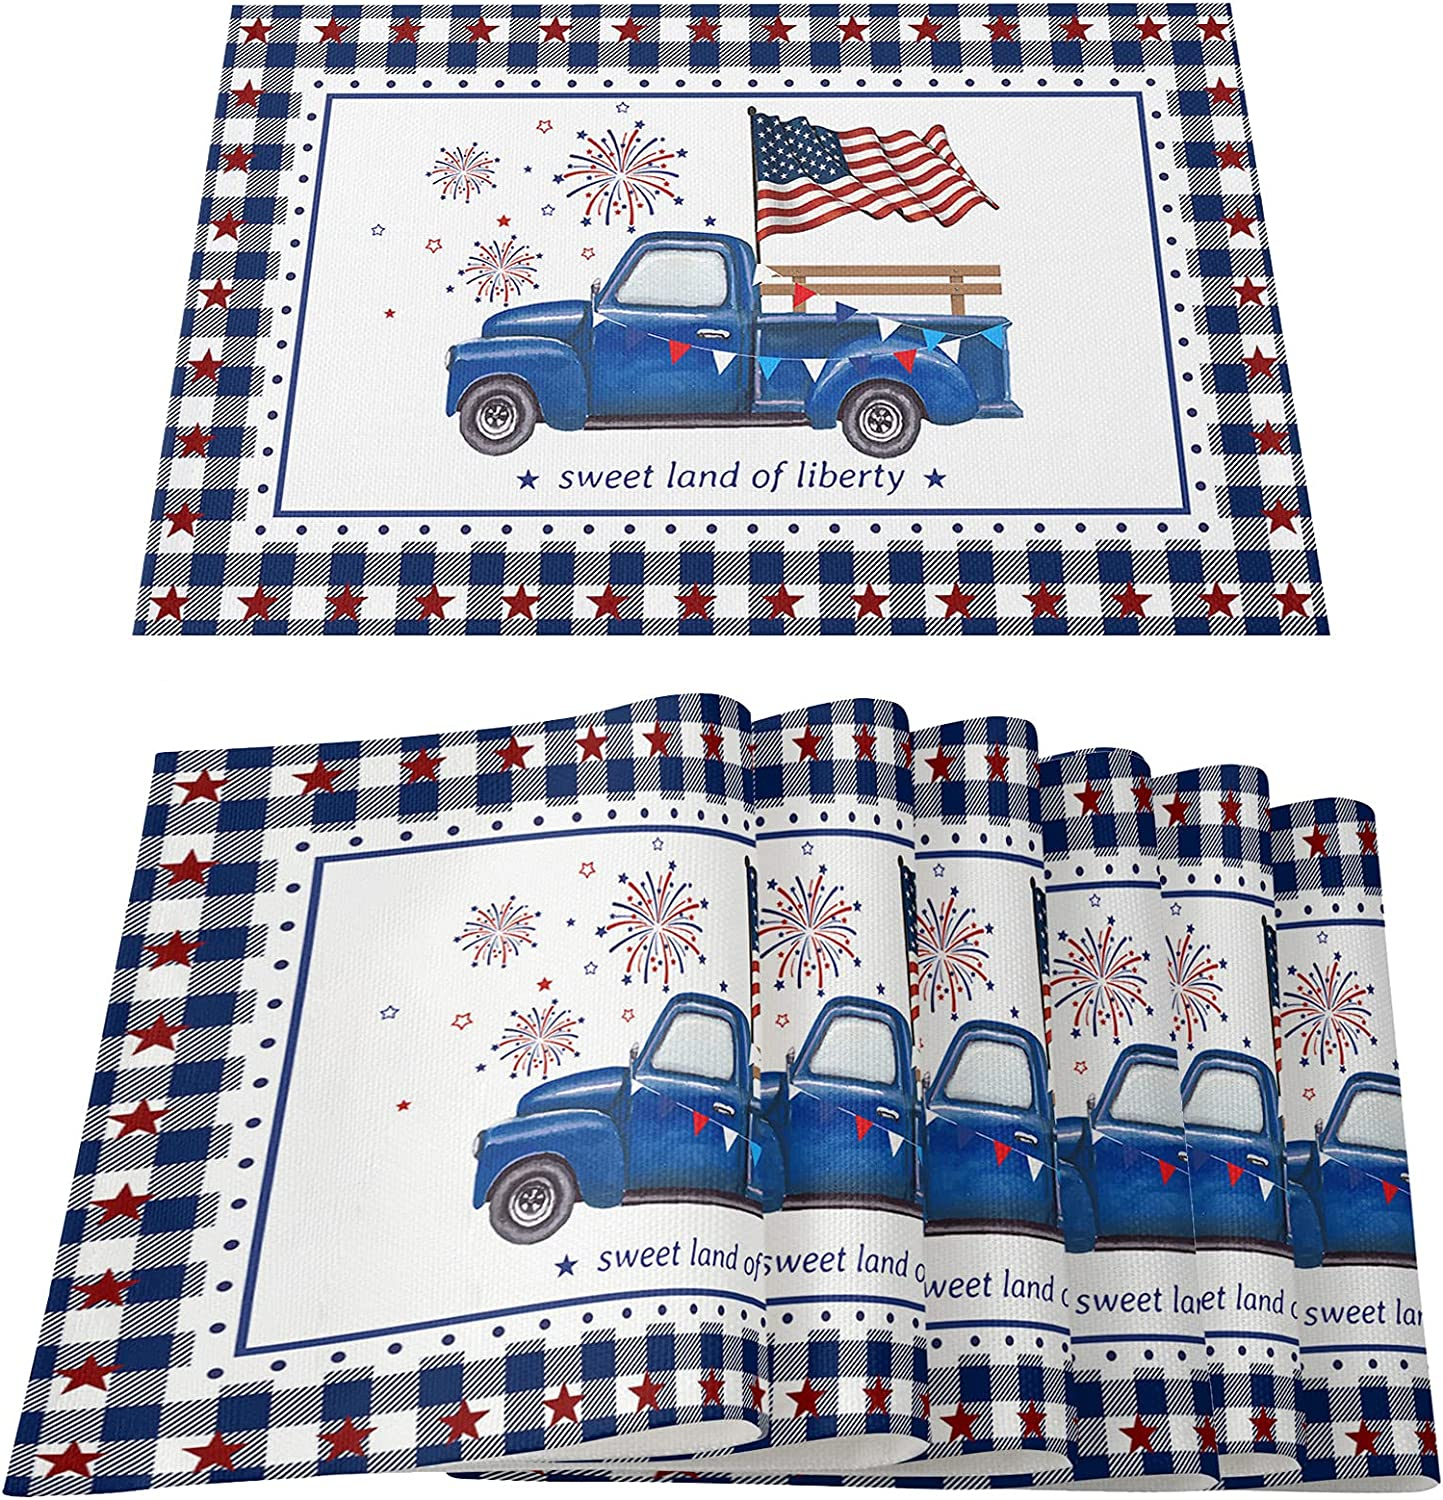 Independence Day Placemats July 4th Red Blue Check Plaid Blue Truck Firework Table Mats Patriot Washable Non-Slip Heat Resistant Placemats for Holiday Banquet Party Kitchen Table Decor (Set of 6)